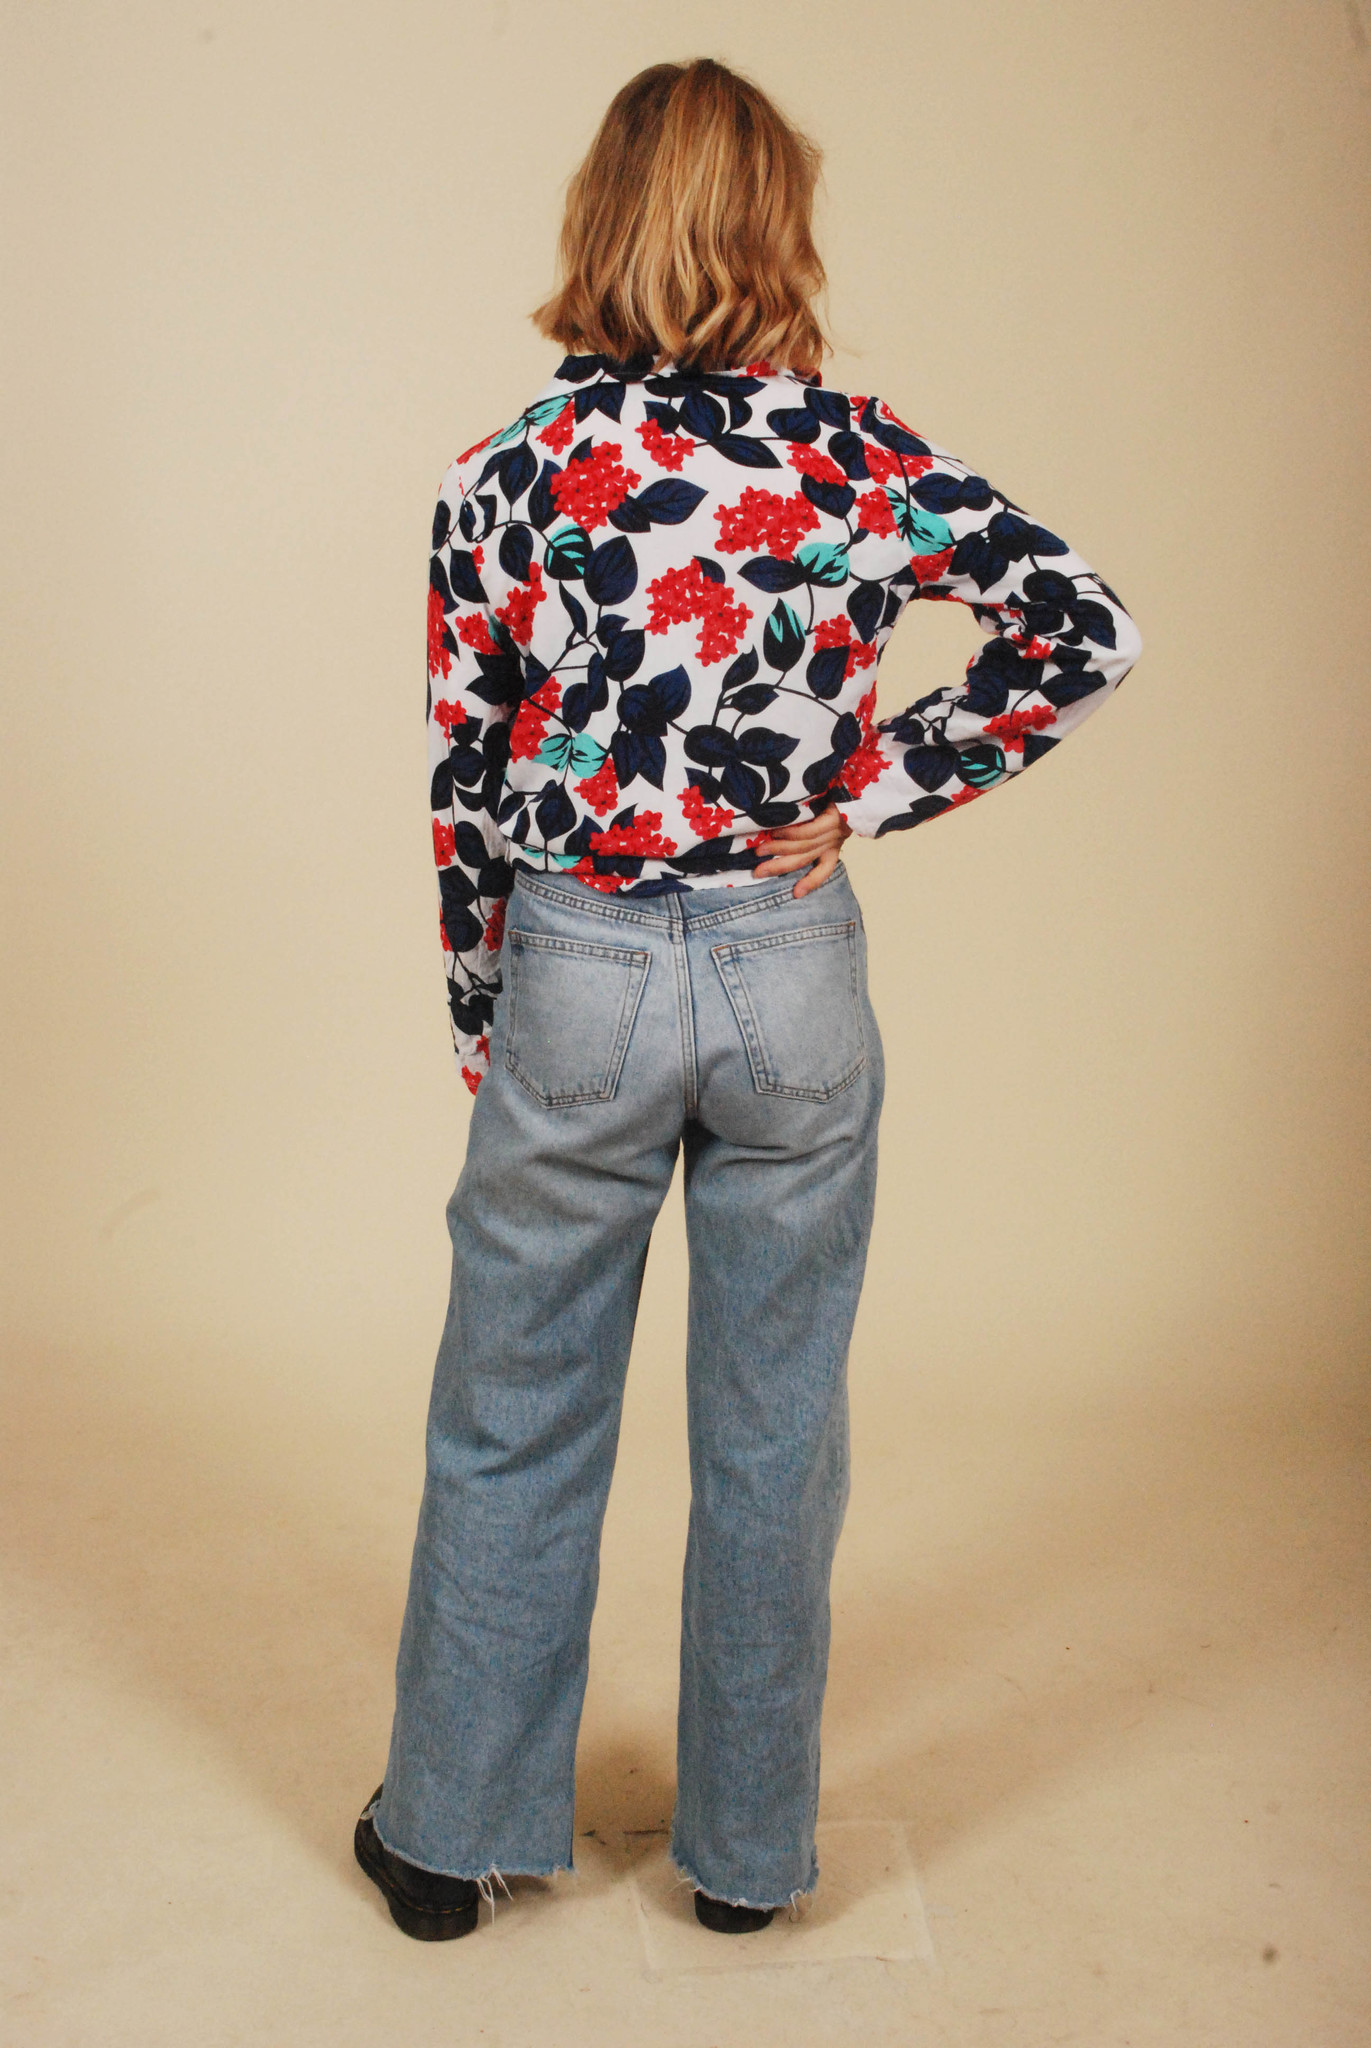 Floral 90s shirt with all-over print